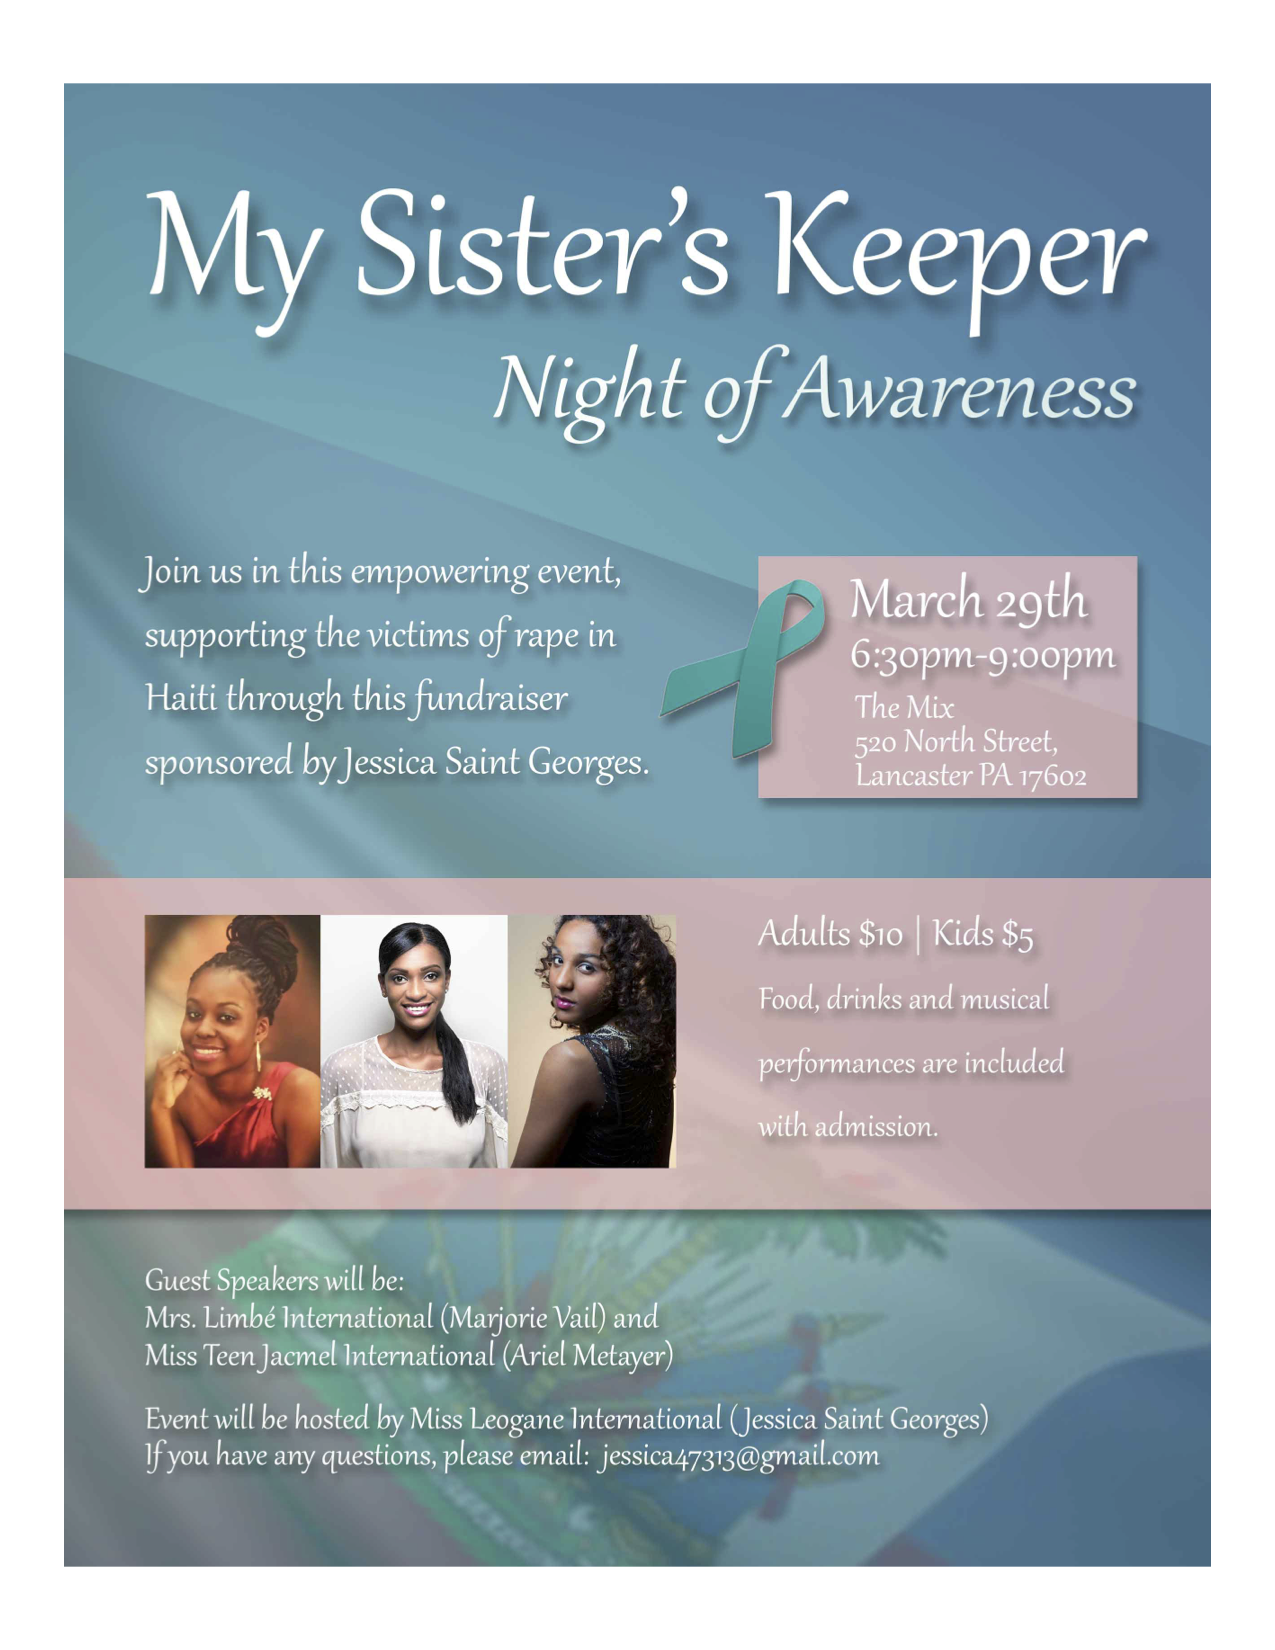 My-Sister's-Keeper-FLYER.final.png